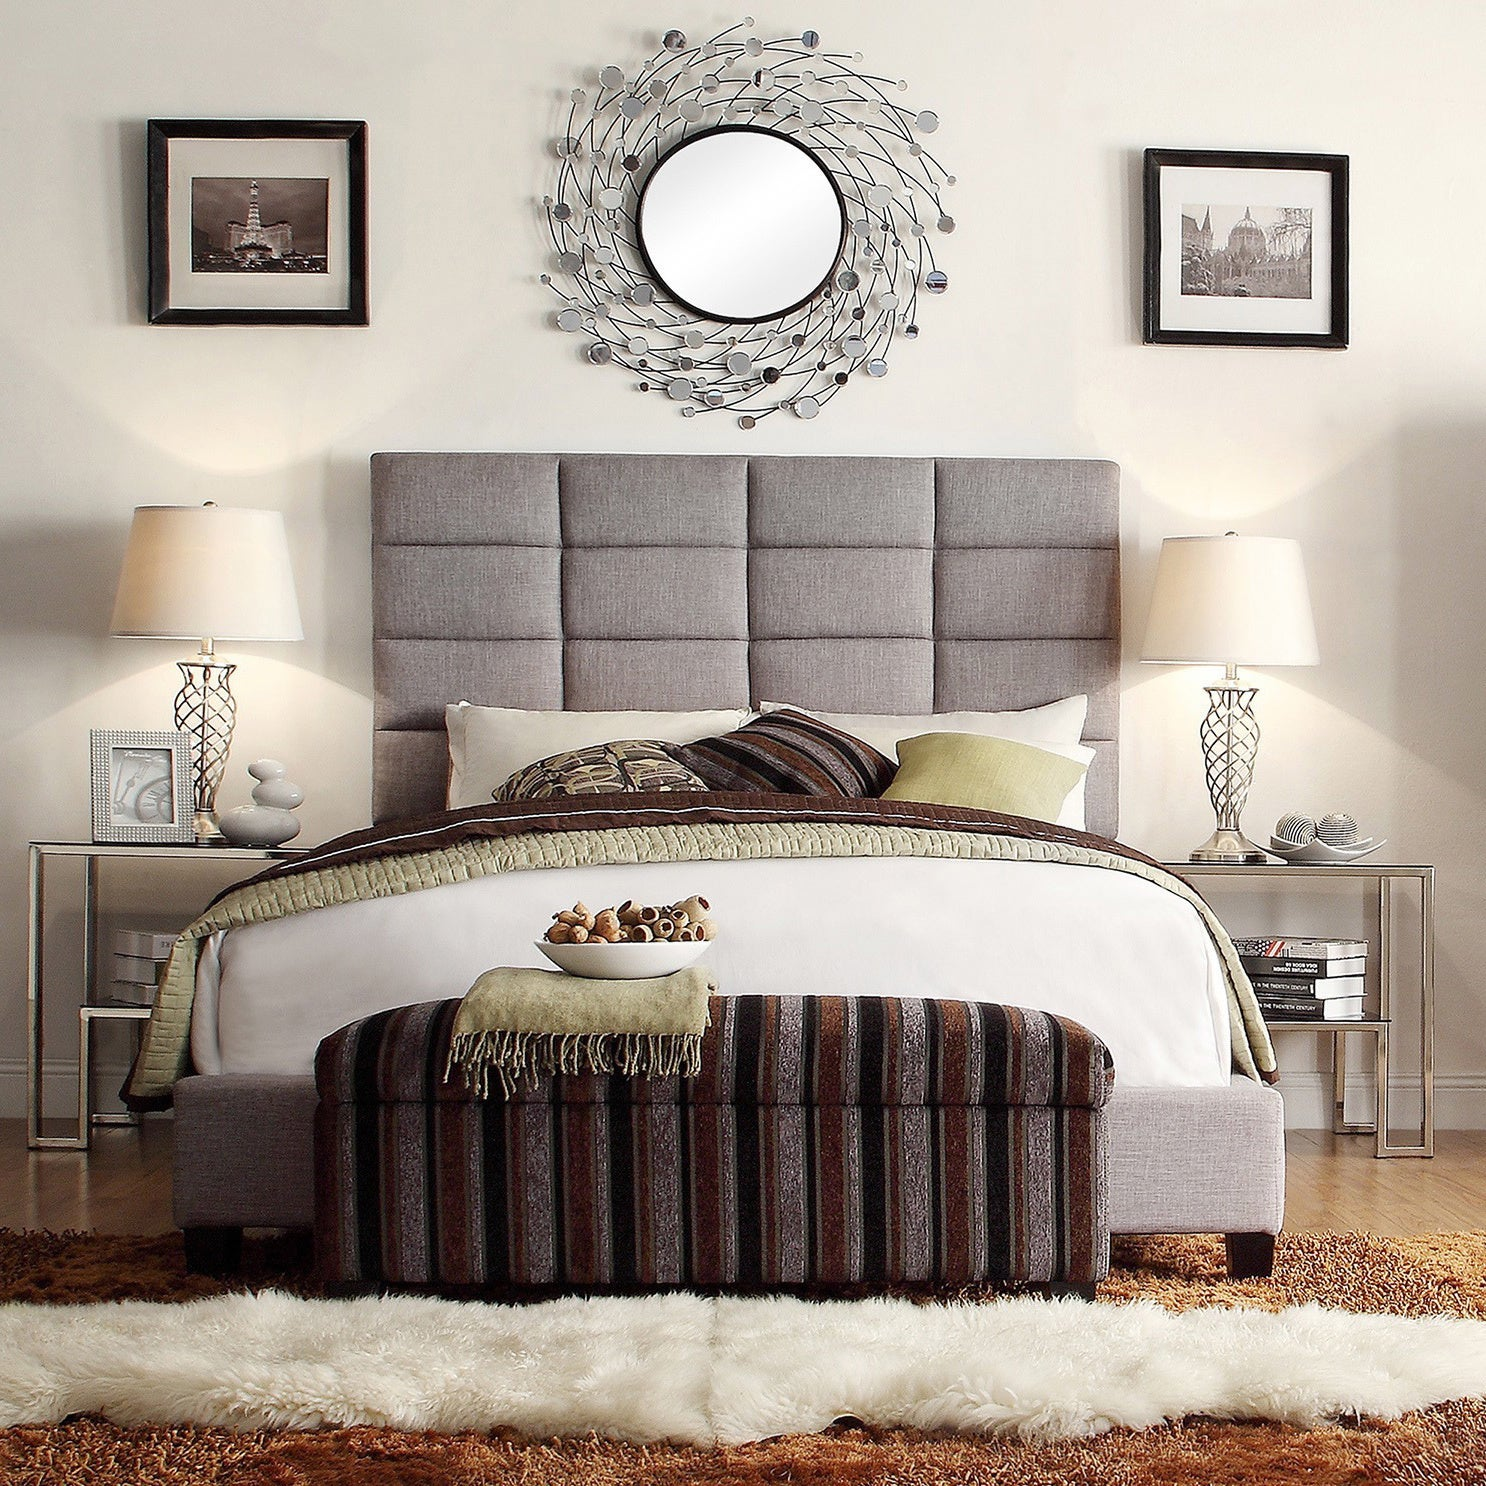 Tower-High-Profile-Upholstered-Queen-Bed-iNSPIRE-Q-